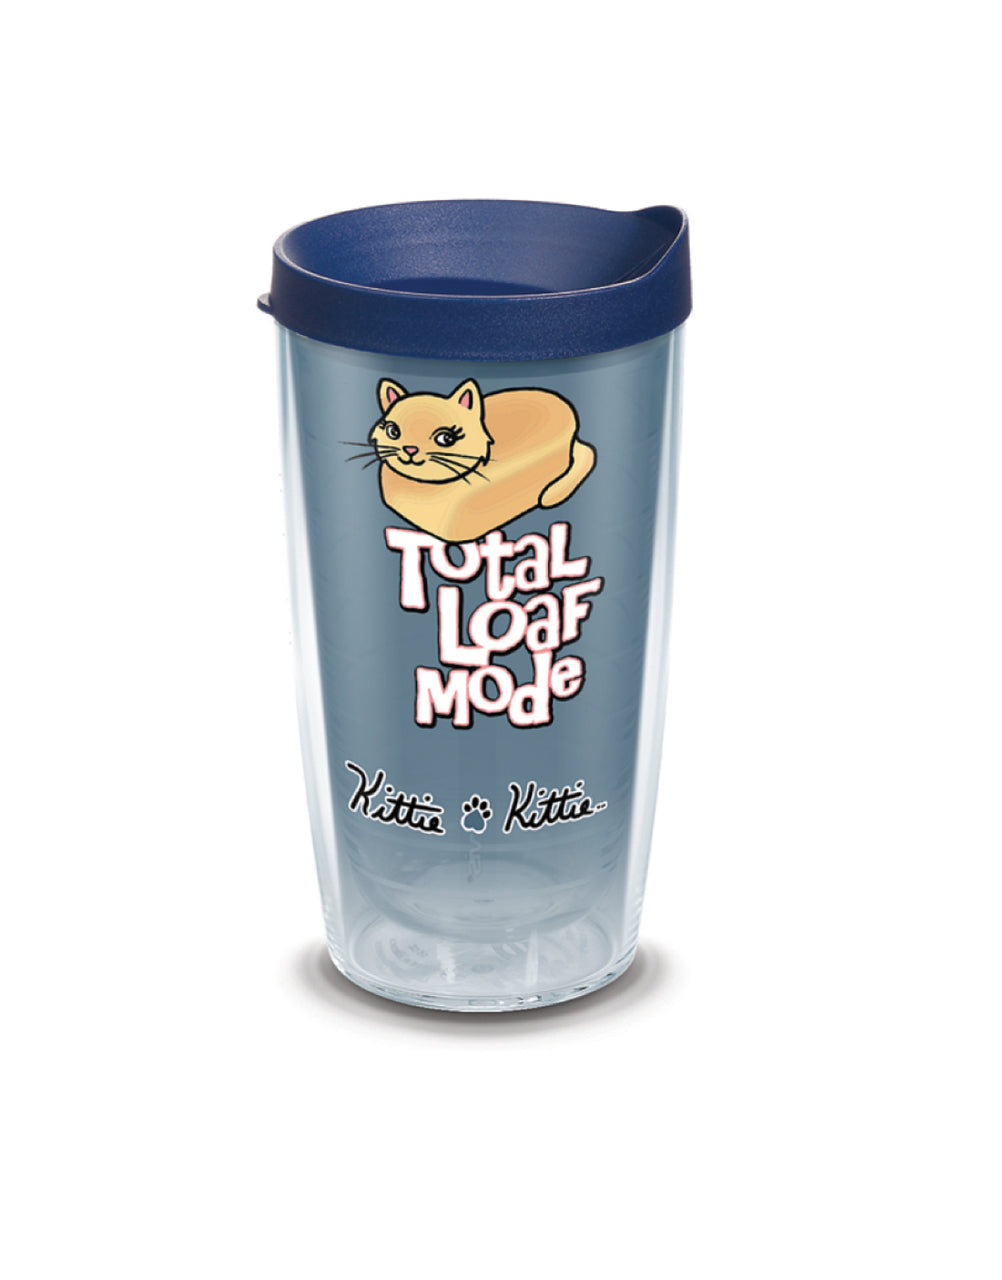 TOTAL LOAF MODE 16oz TUMBLER